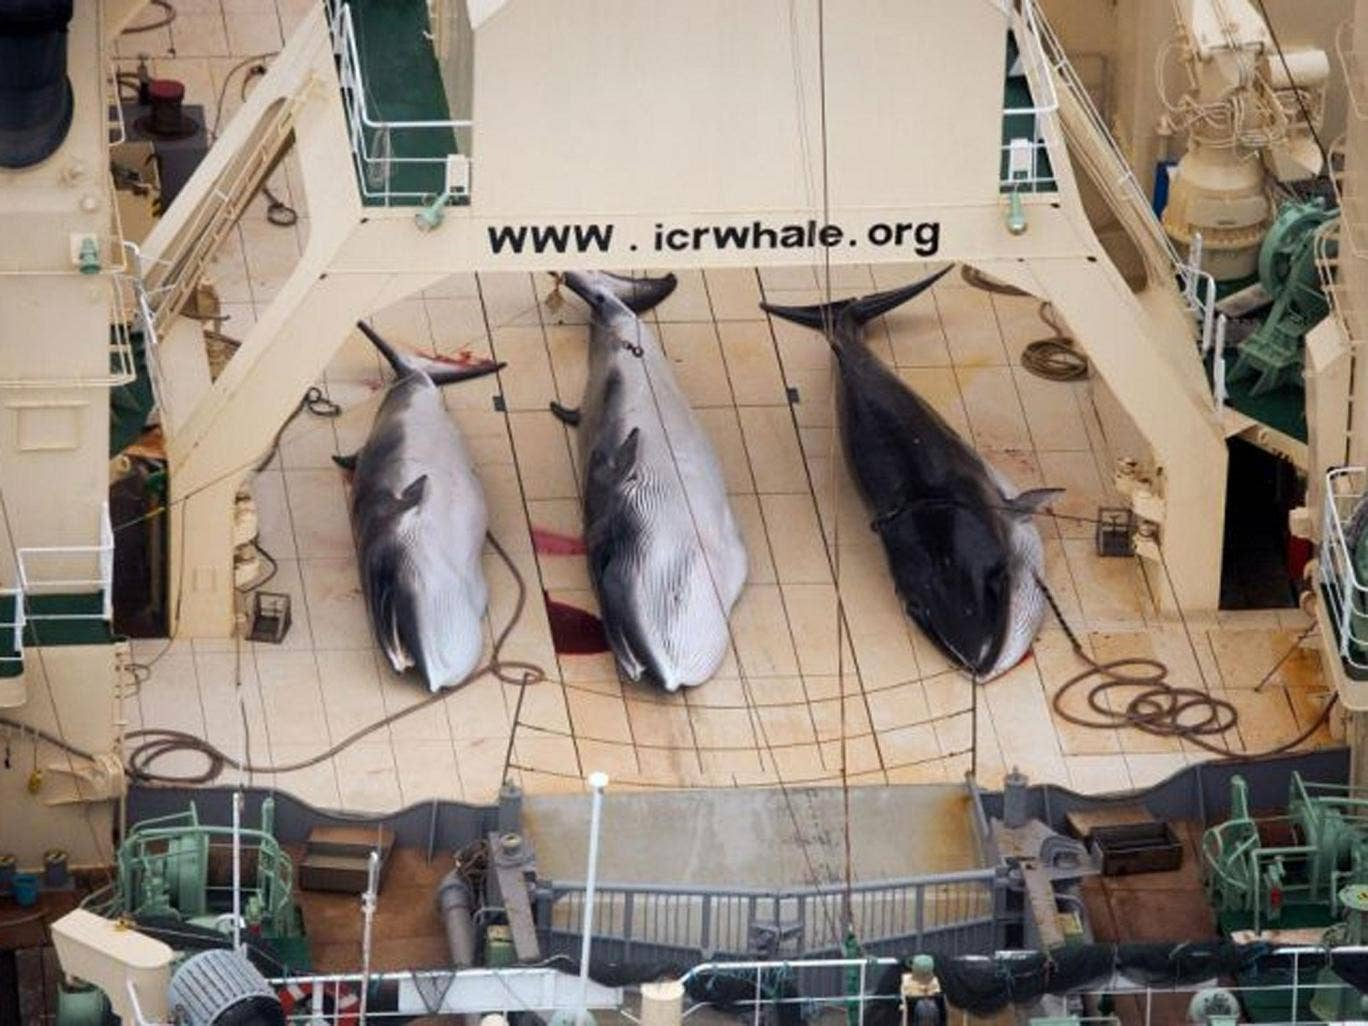 FILE - In this file photo taken on Sunday, Jan. 5, 2014 and supplied by Sea Shepherd Australia on Monday, Jan. 6, 2014, three dead minke whales lie on the deck of the Japanese whaling vessel Nisshin Maru, in the Southern Ocean. The International Court of